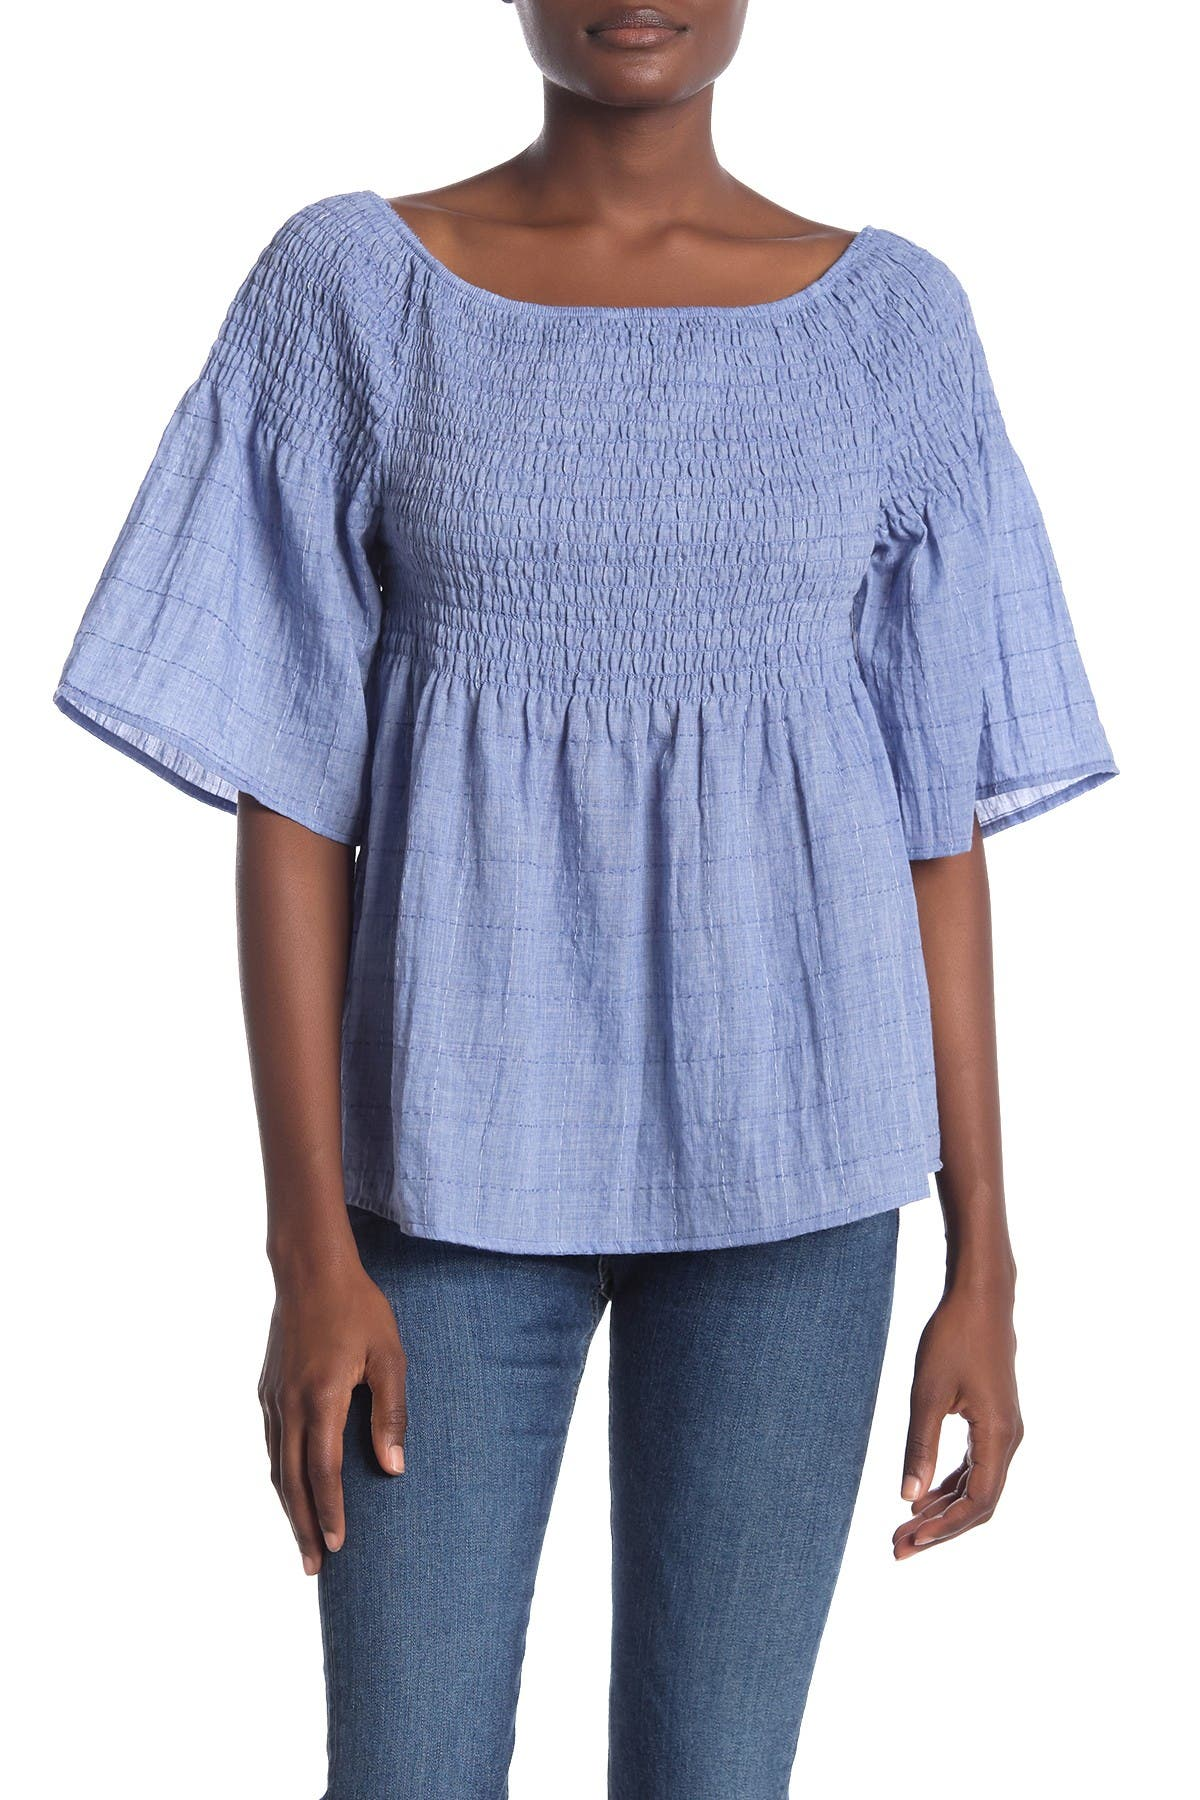 Image of Liverpool Jeans Co Smocked Peasant Top